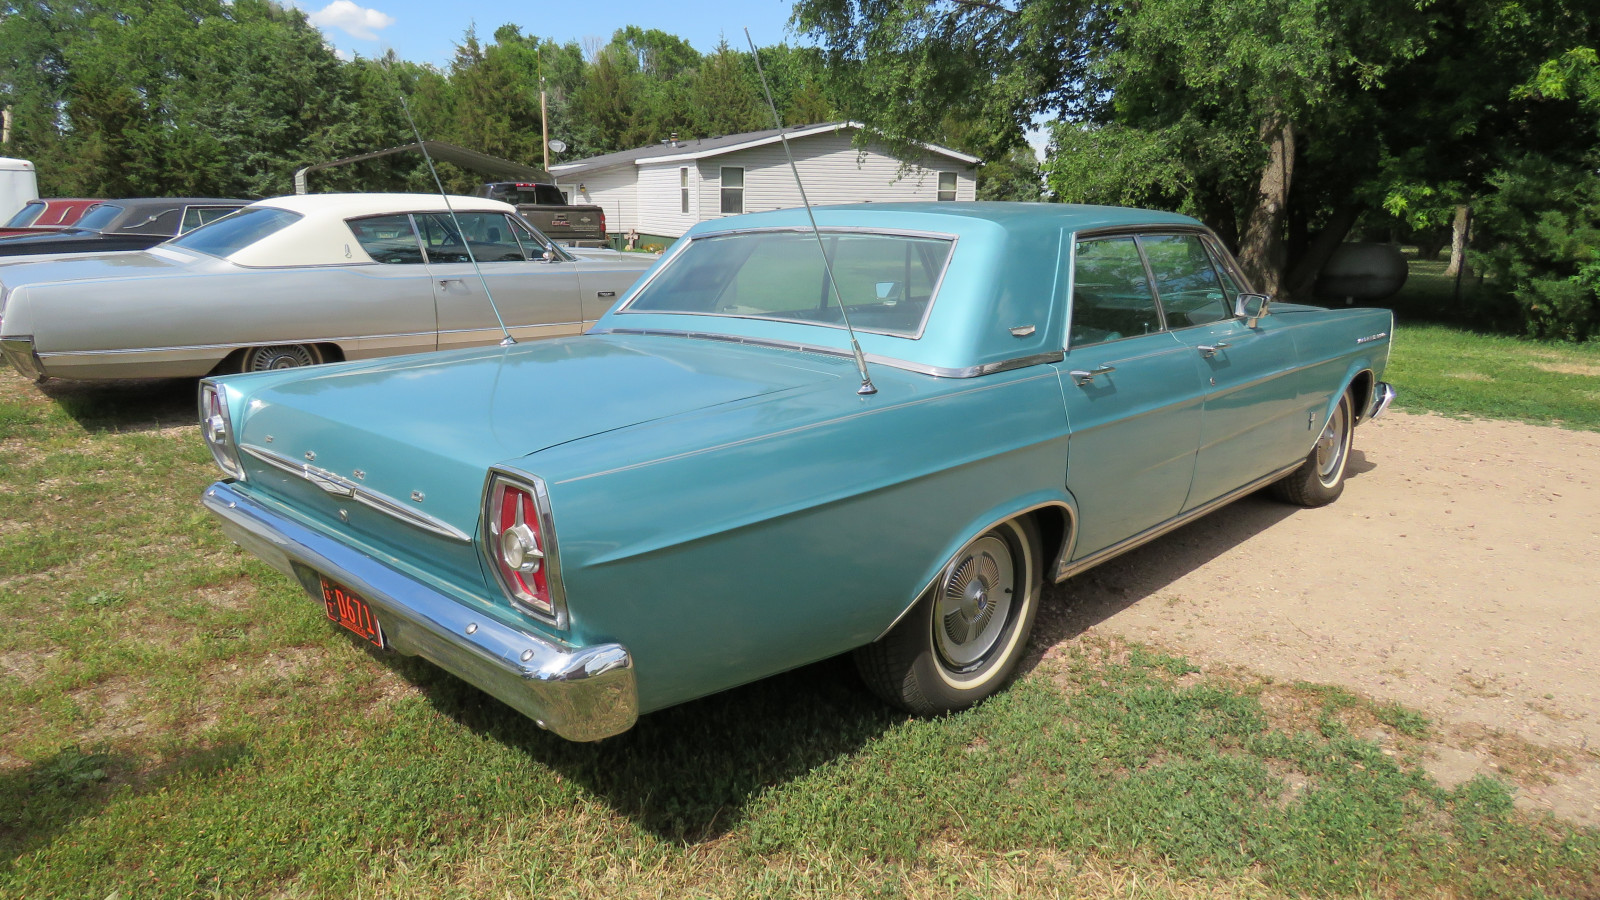 1965 Ford Galaxie 500 4dr HT - Image 7